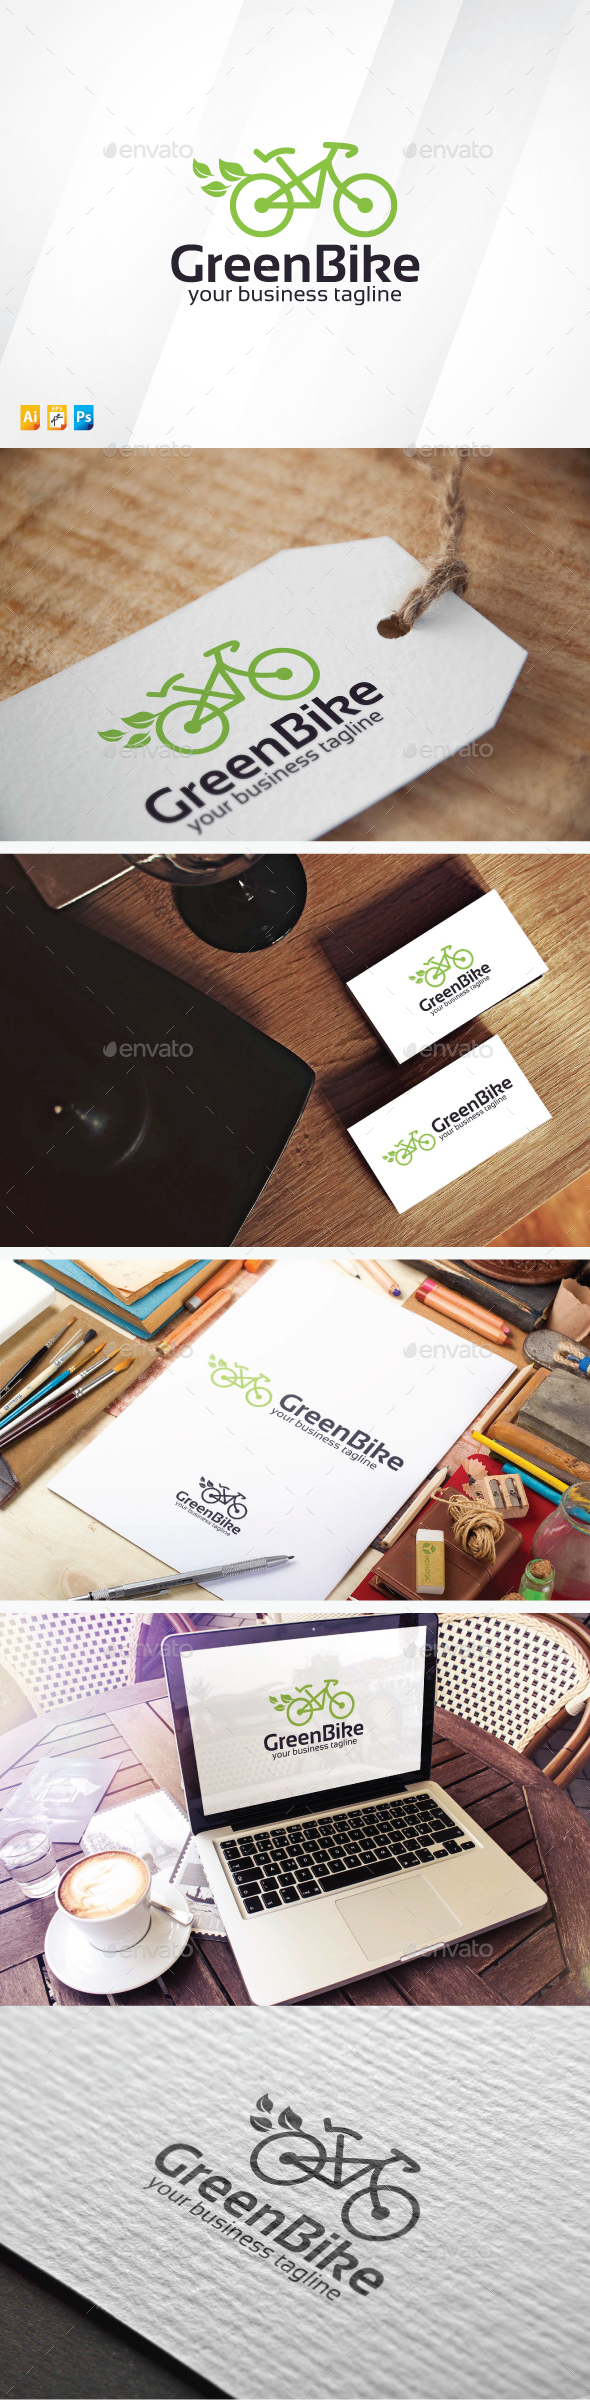 Green Bicycle - Objects Logo Templates